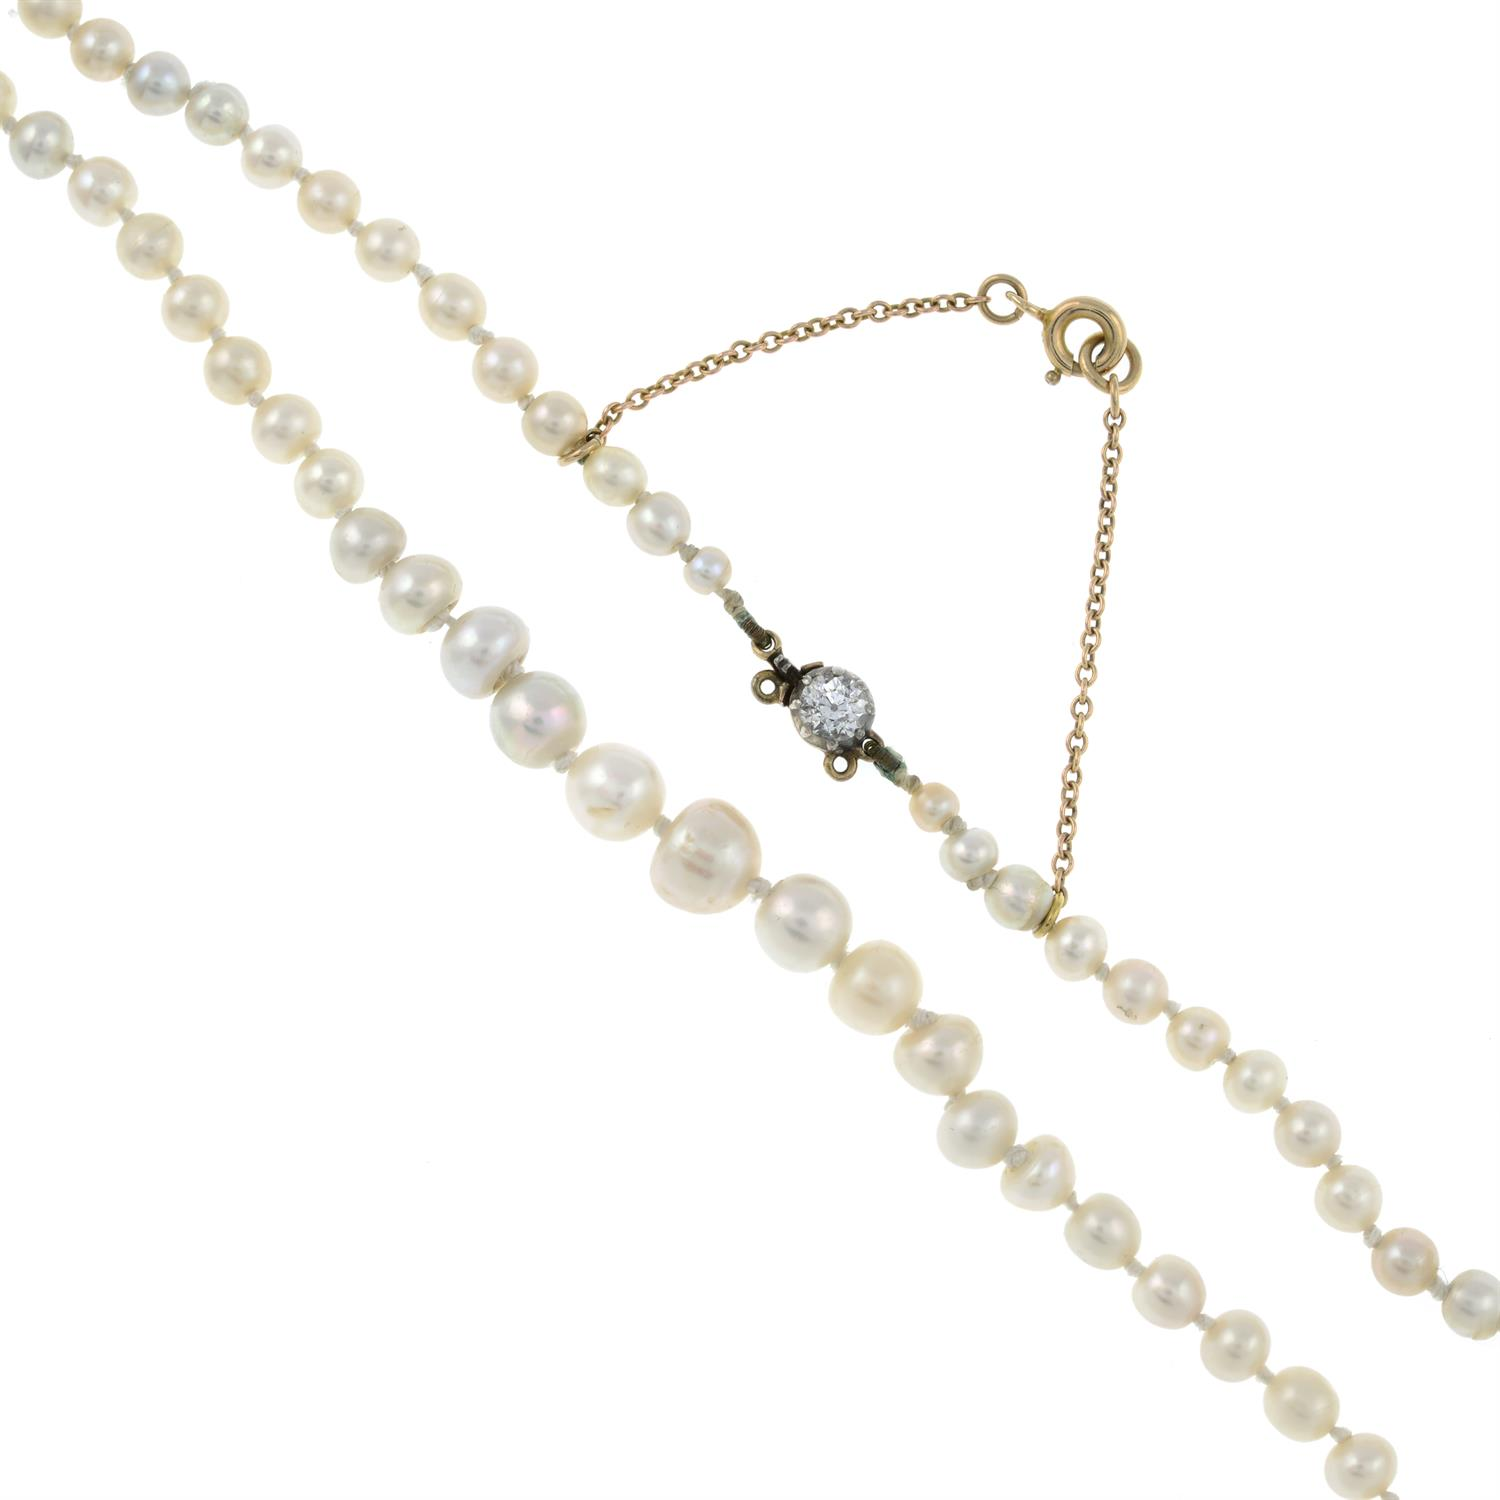 A graduated natural pearl single-strand necklace, with old-cut diamond clasp. - Image 2 of 6